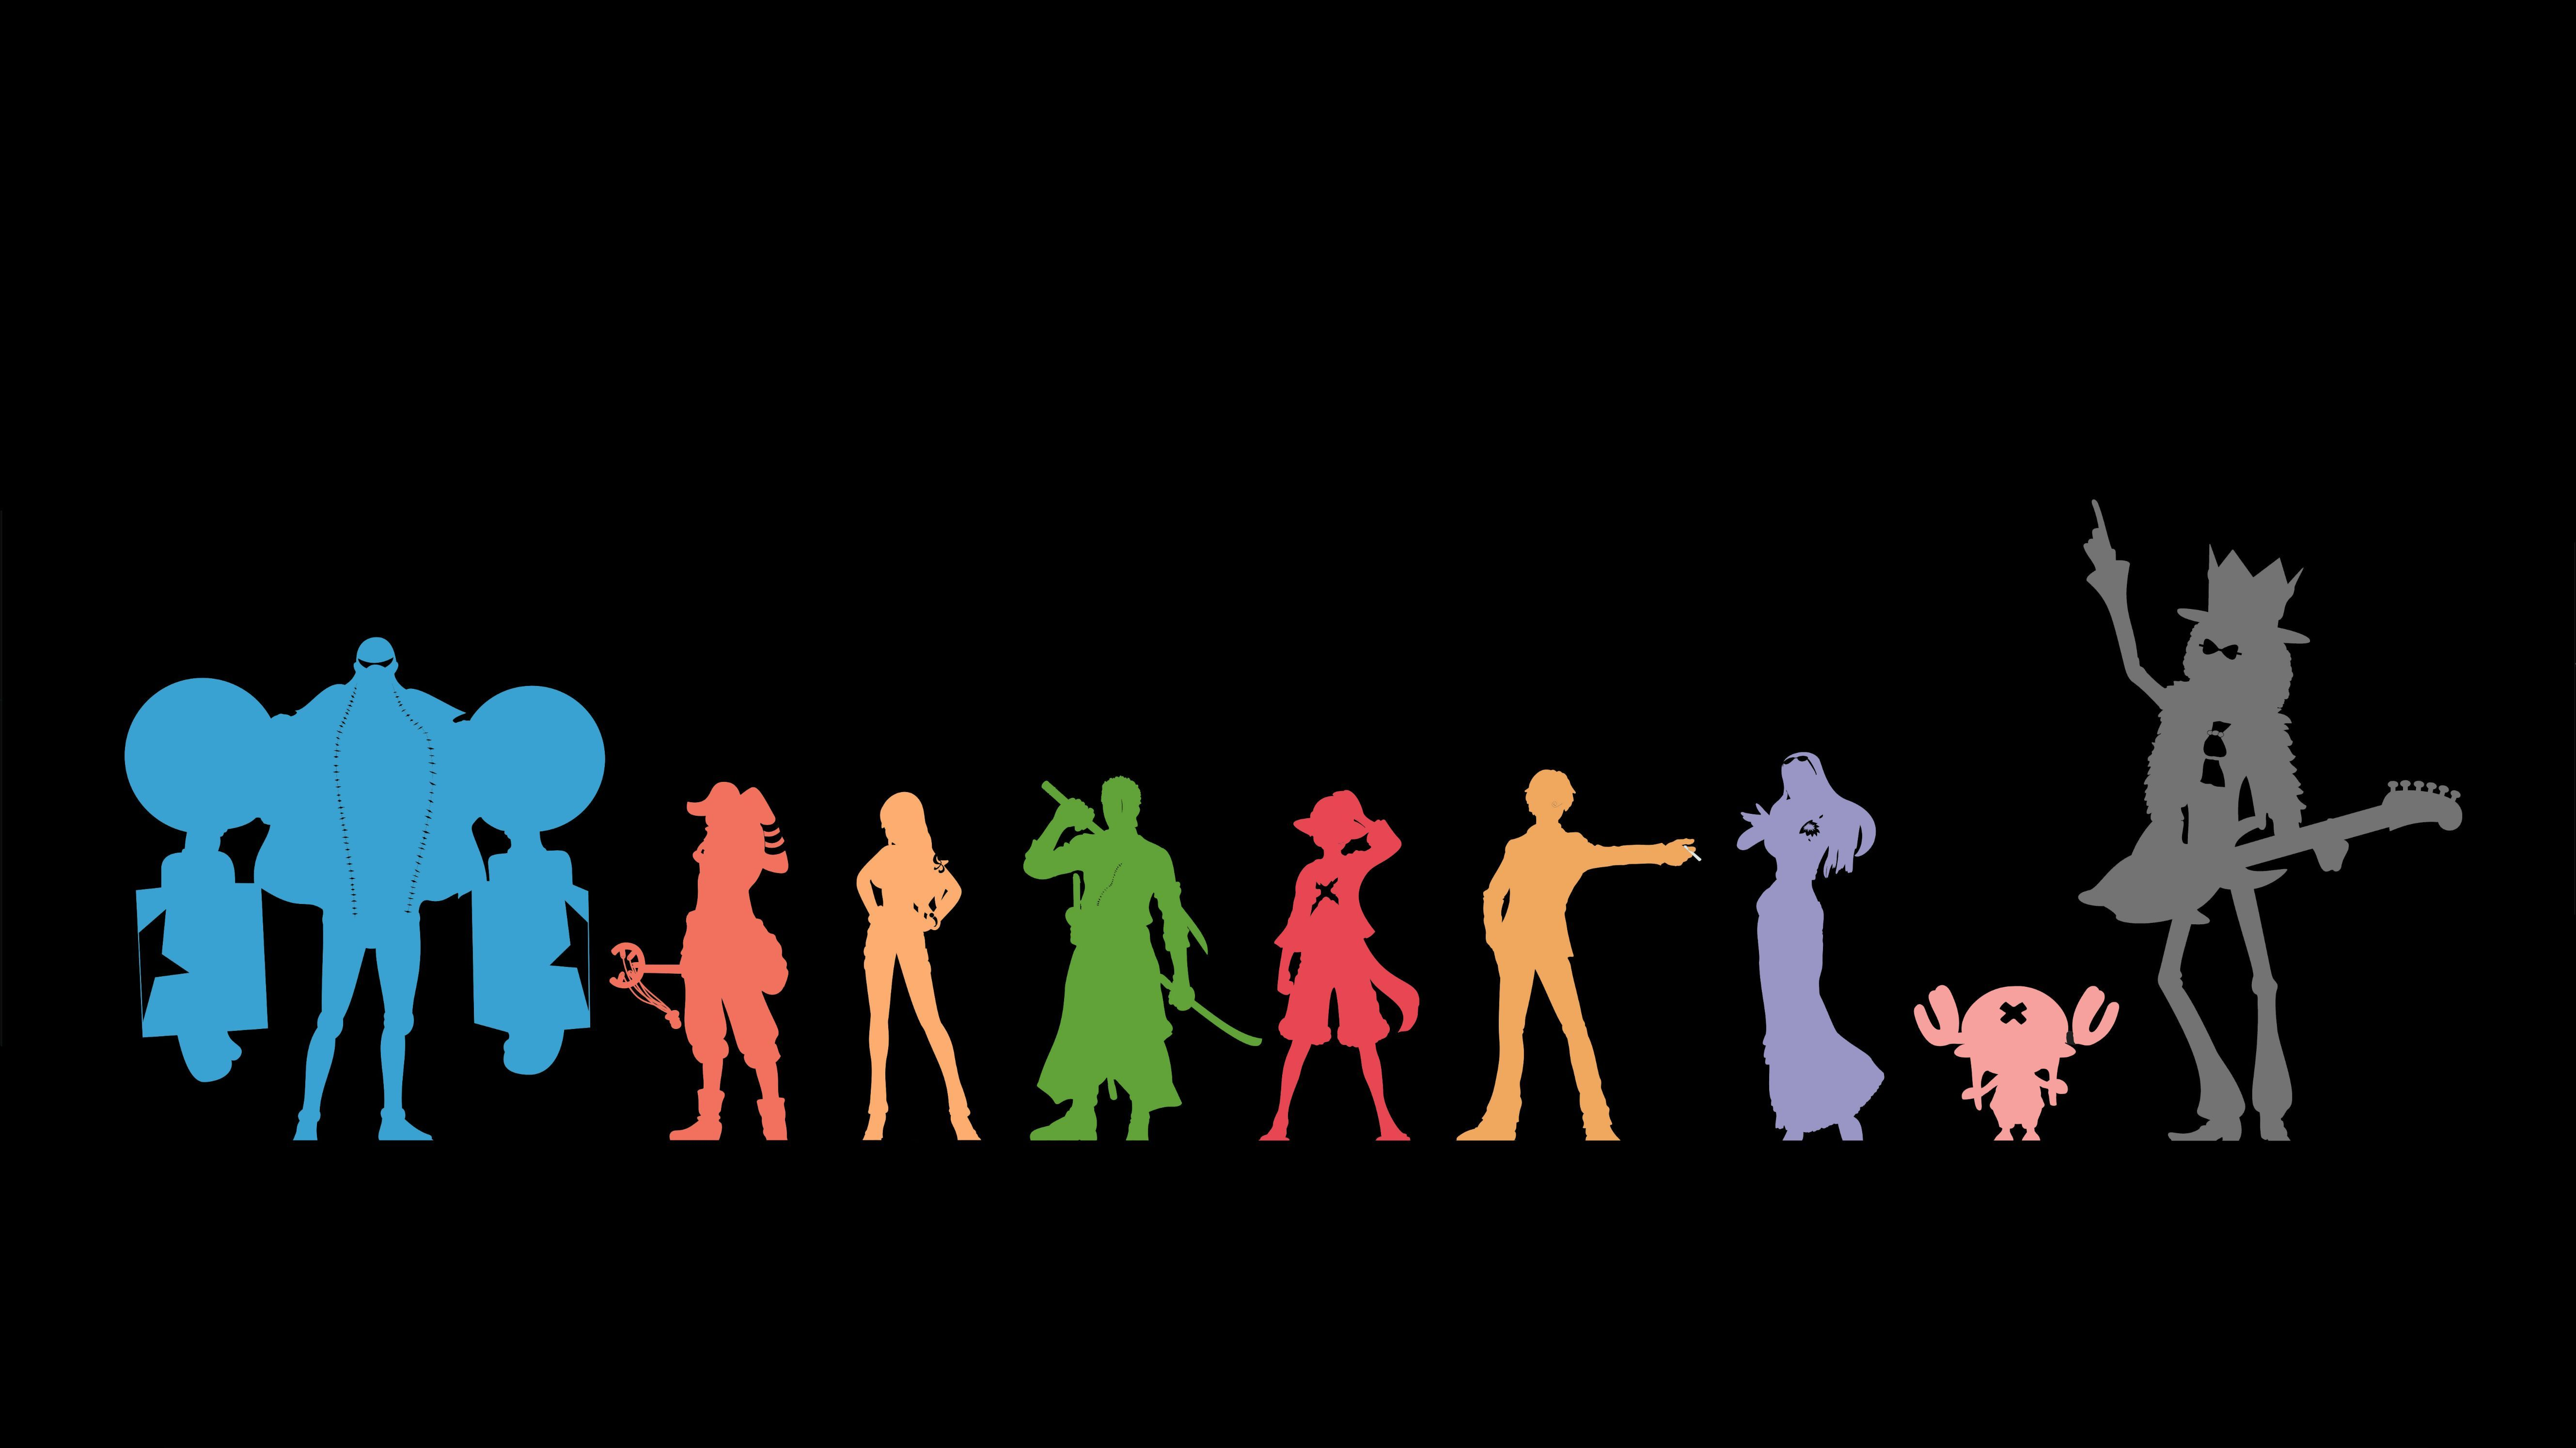 Minimalist One Piece Wallpapers Top Free Minimalist One Piece Backgrounds Wallpaperaccess